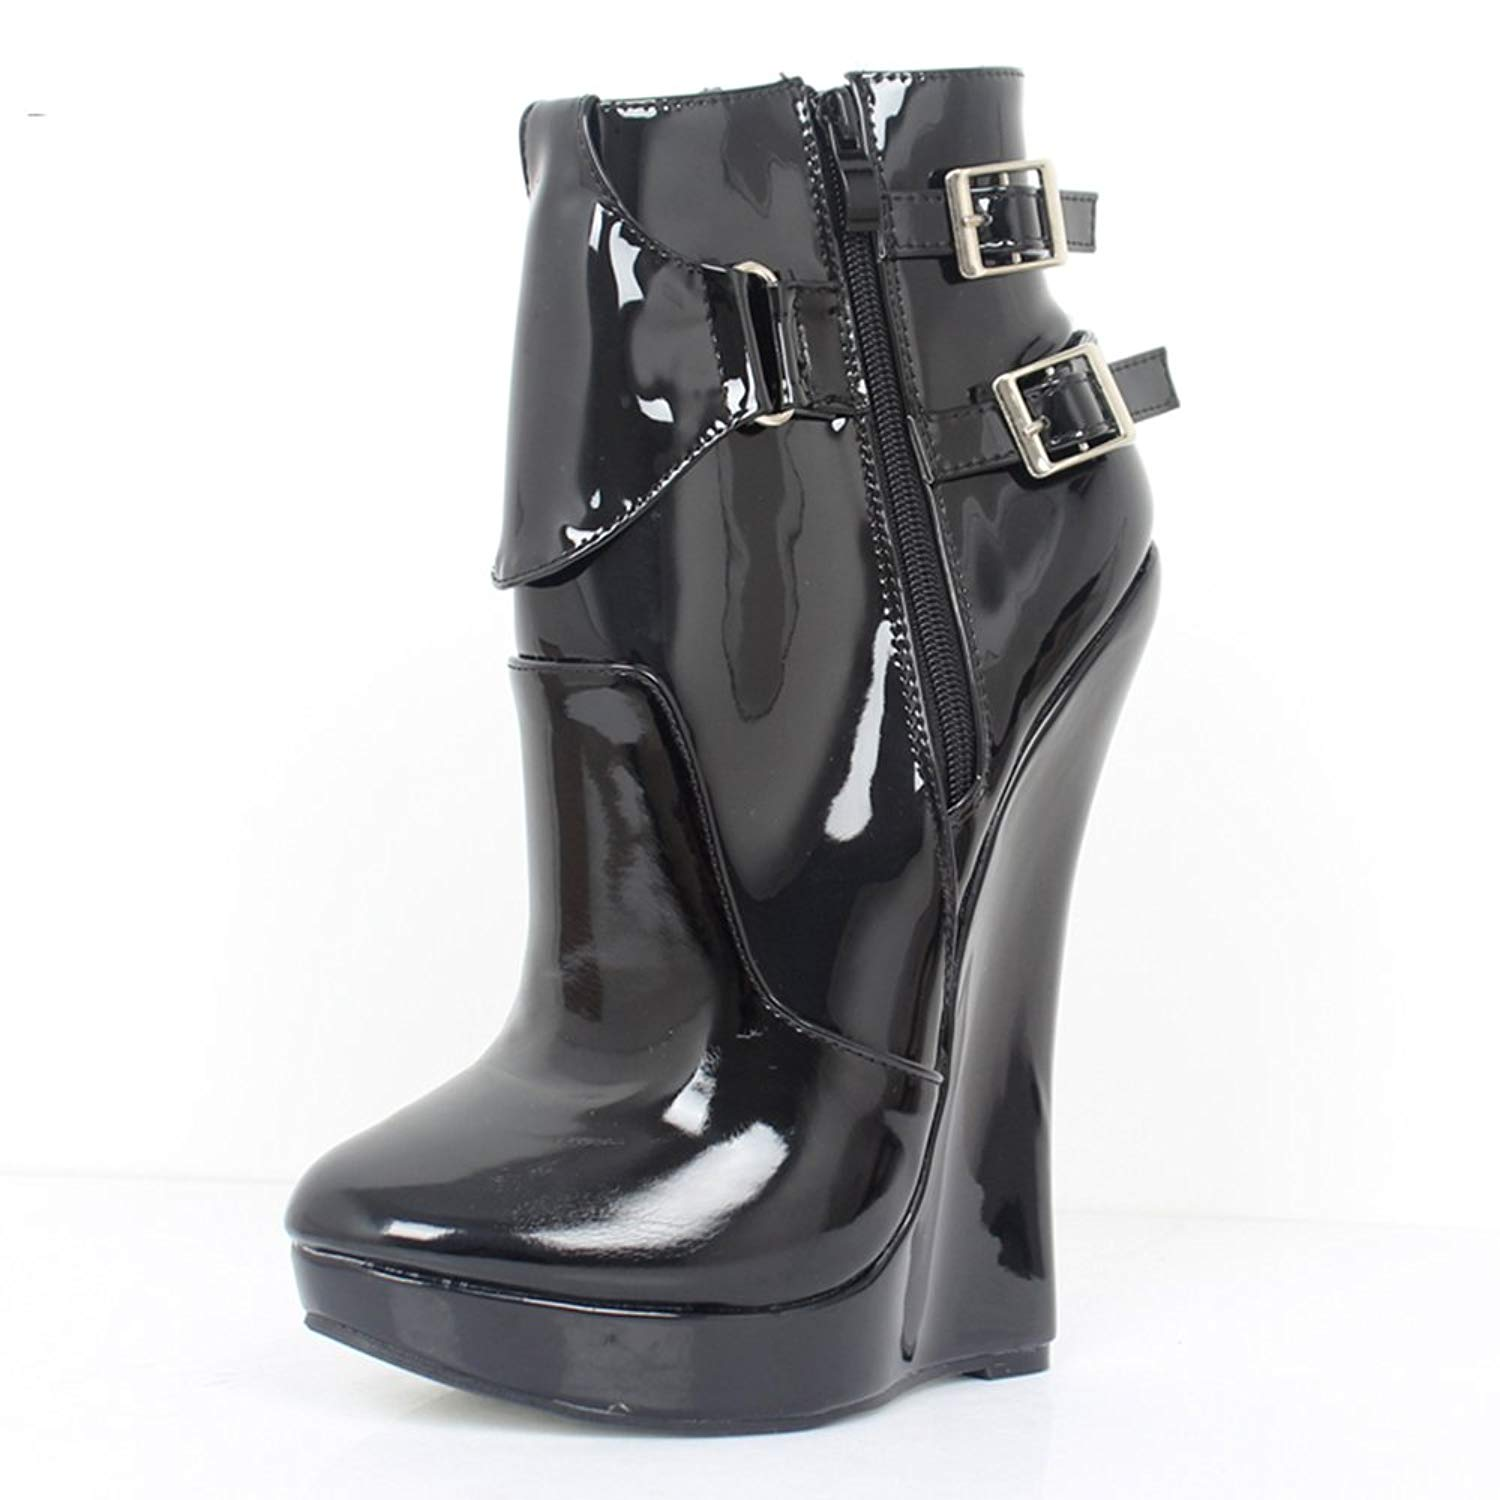 8cdc7949577 Get Quotations · JiaLuoWei Women Ankle Boots High Wedge Heels Zip Buckle  Straps Unisex Sexy Fetish Boots 18cm High